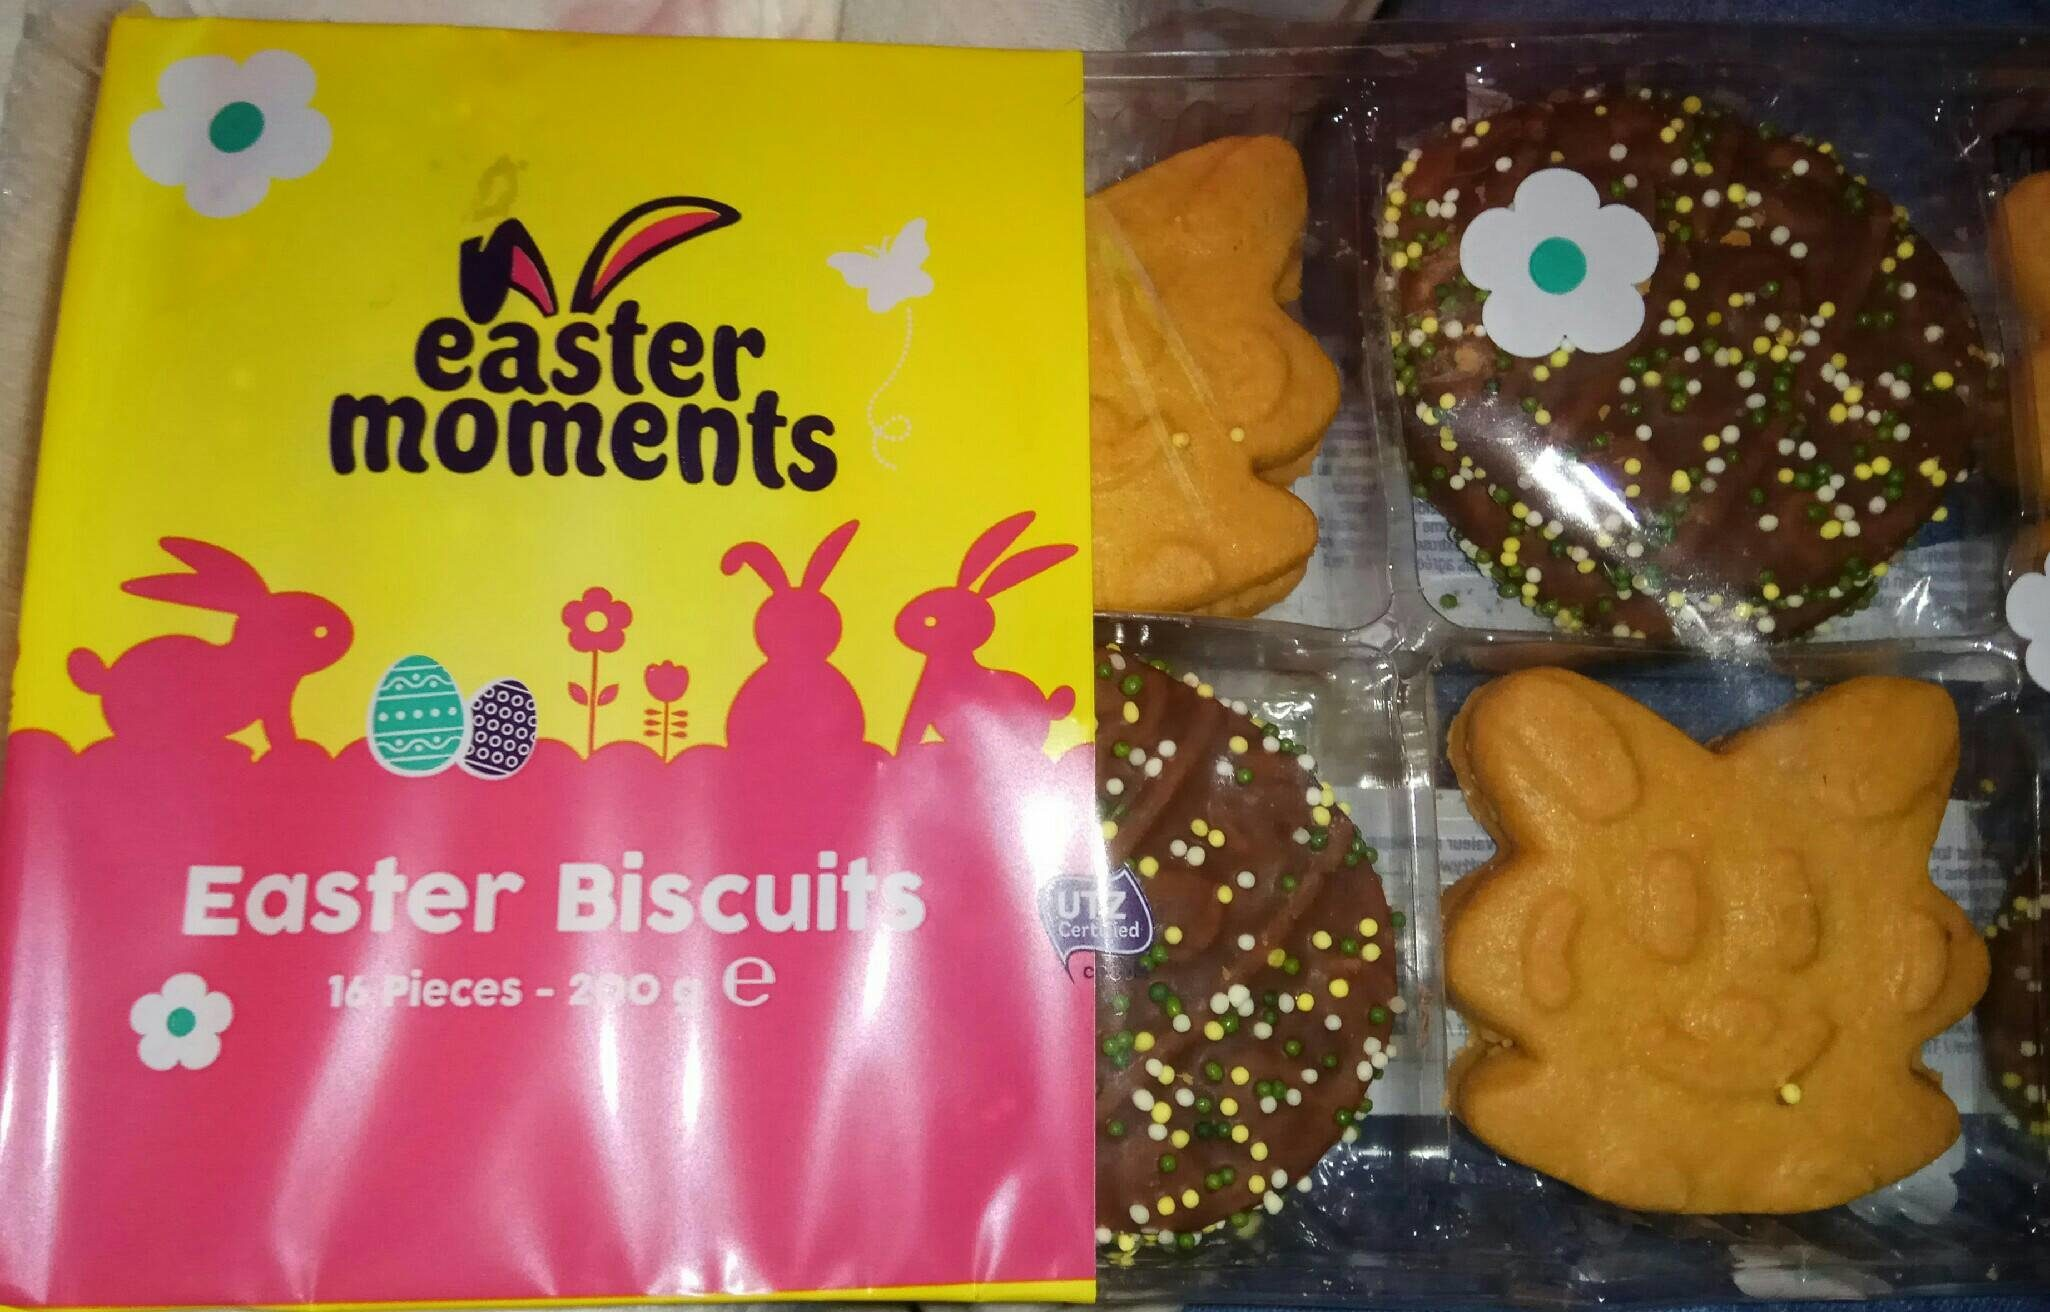 Easter biscuits - Produit